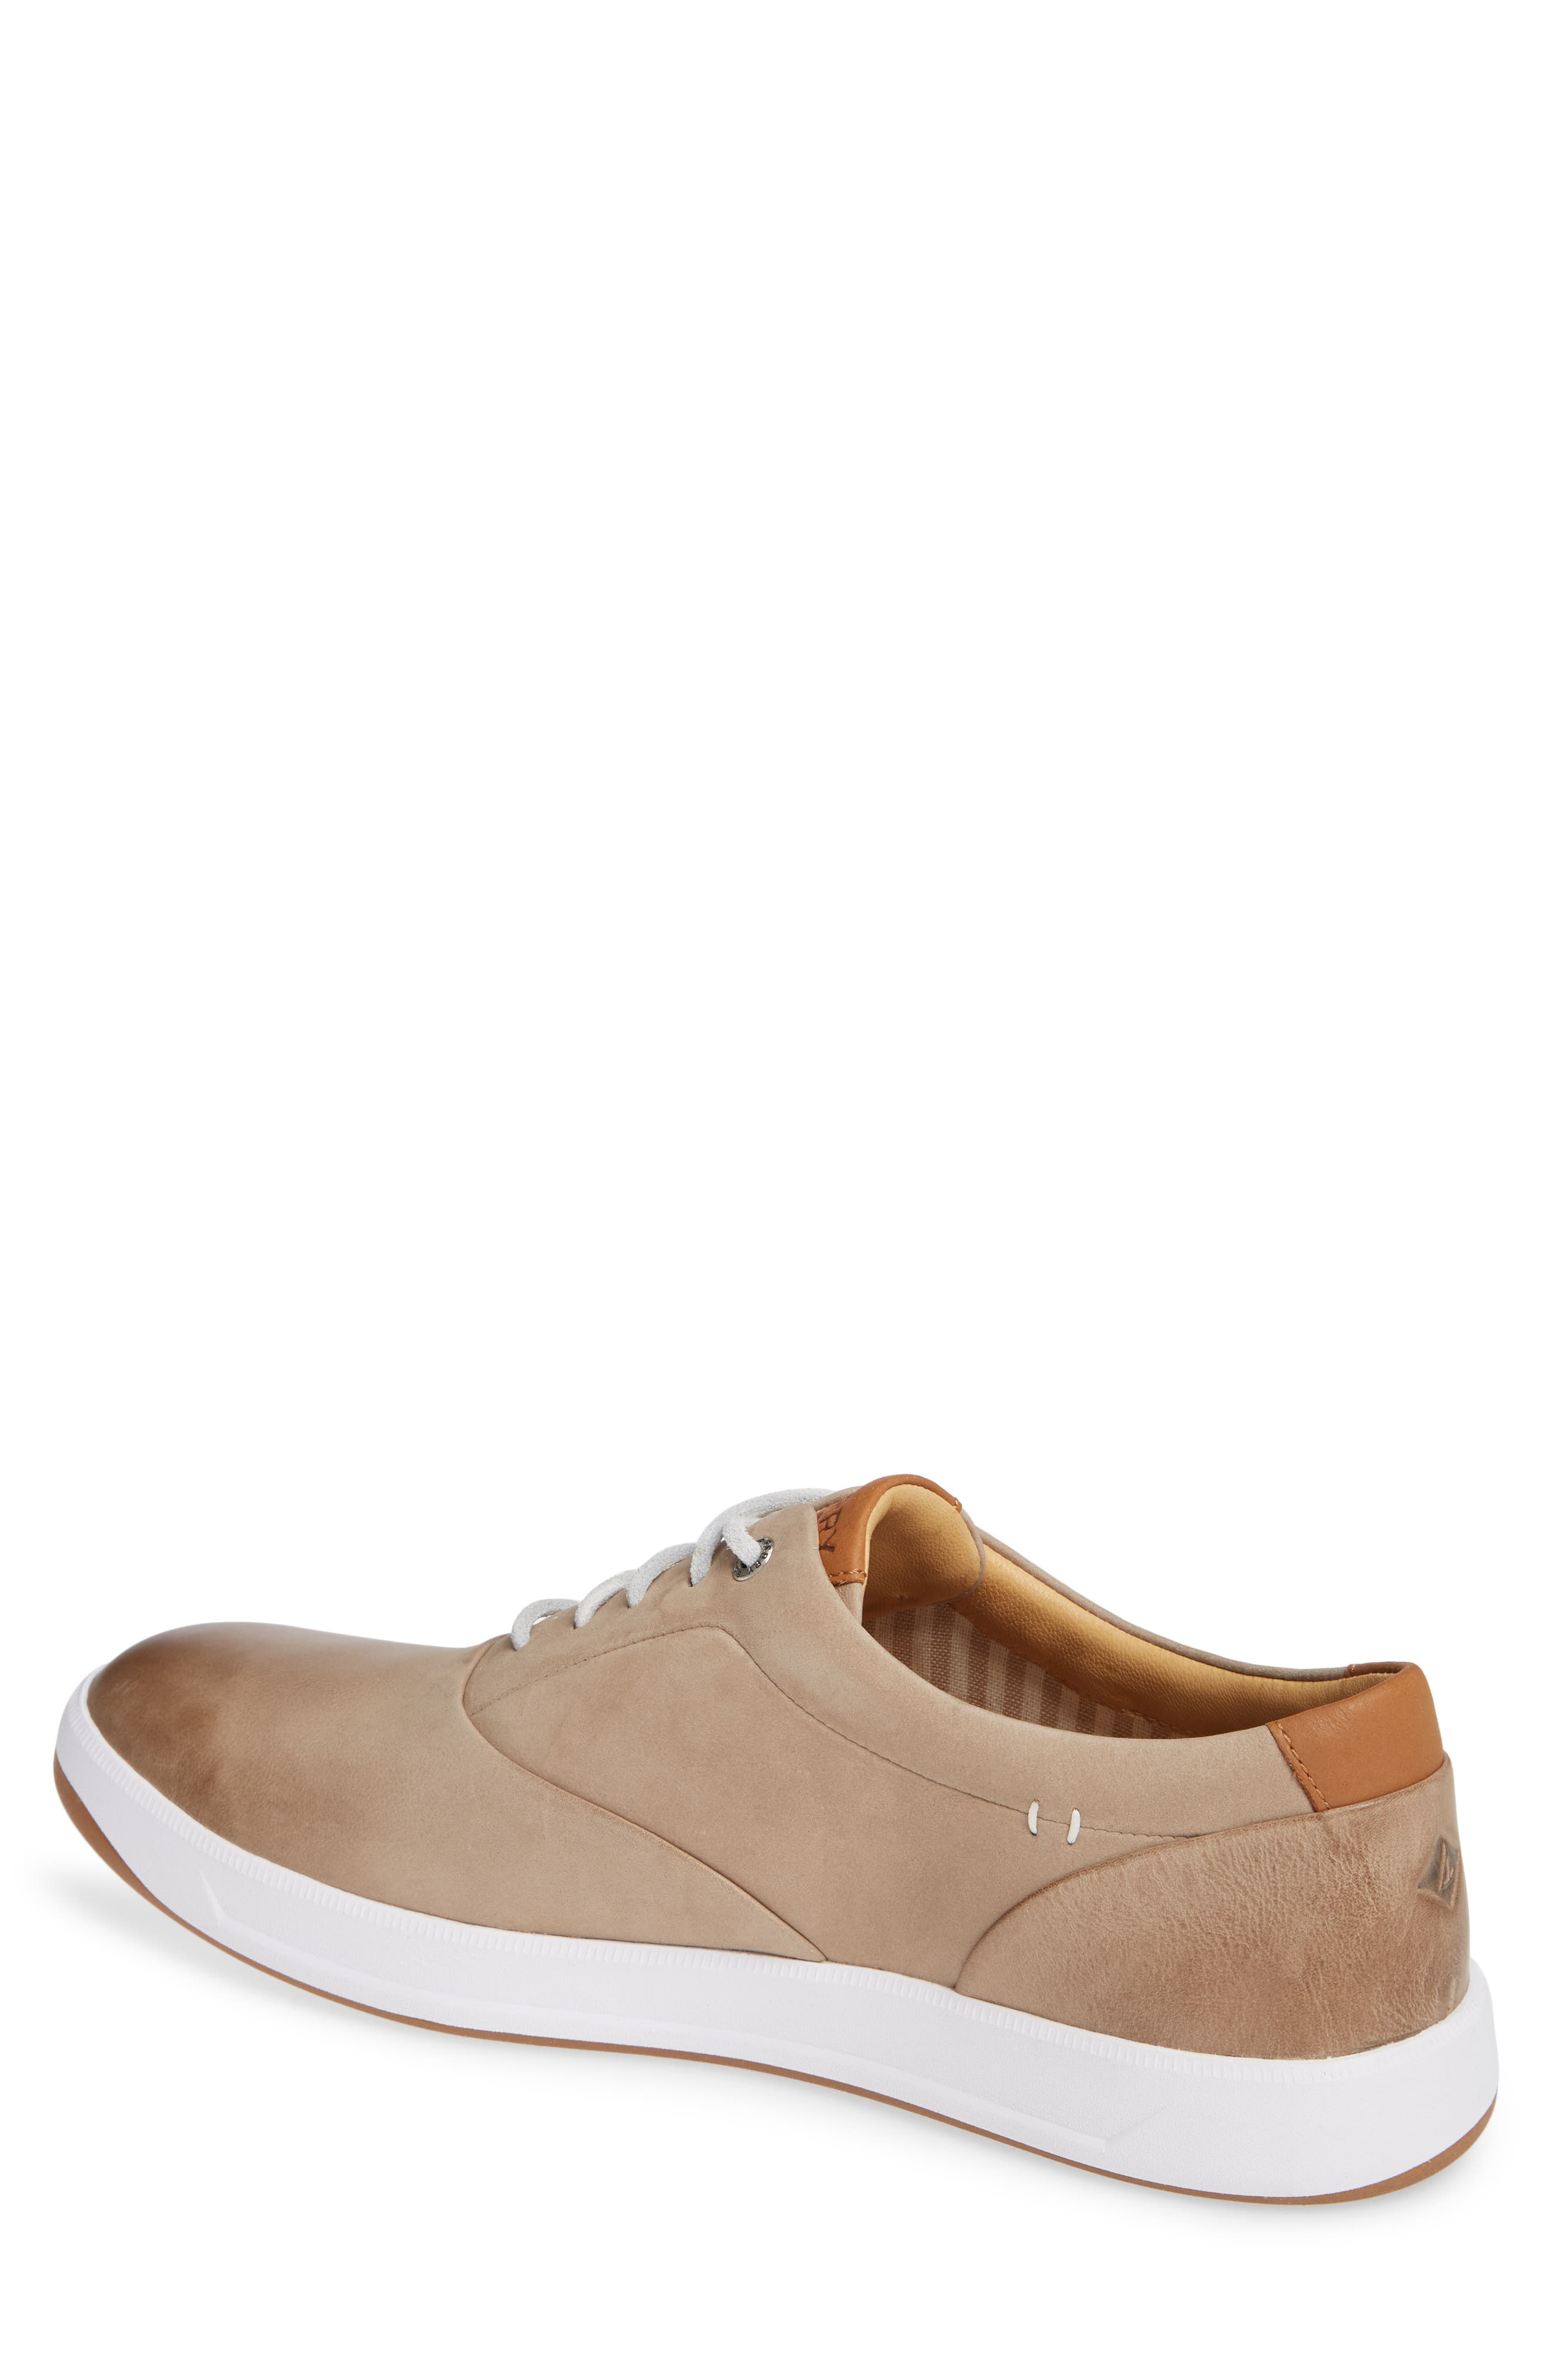 Gold Cup Richfield CVO Sneaker,                             Alternate thumbnail 2, color,                             250